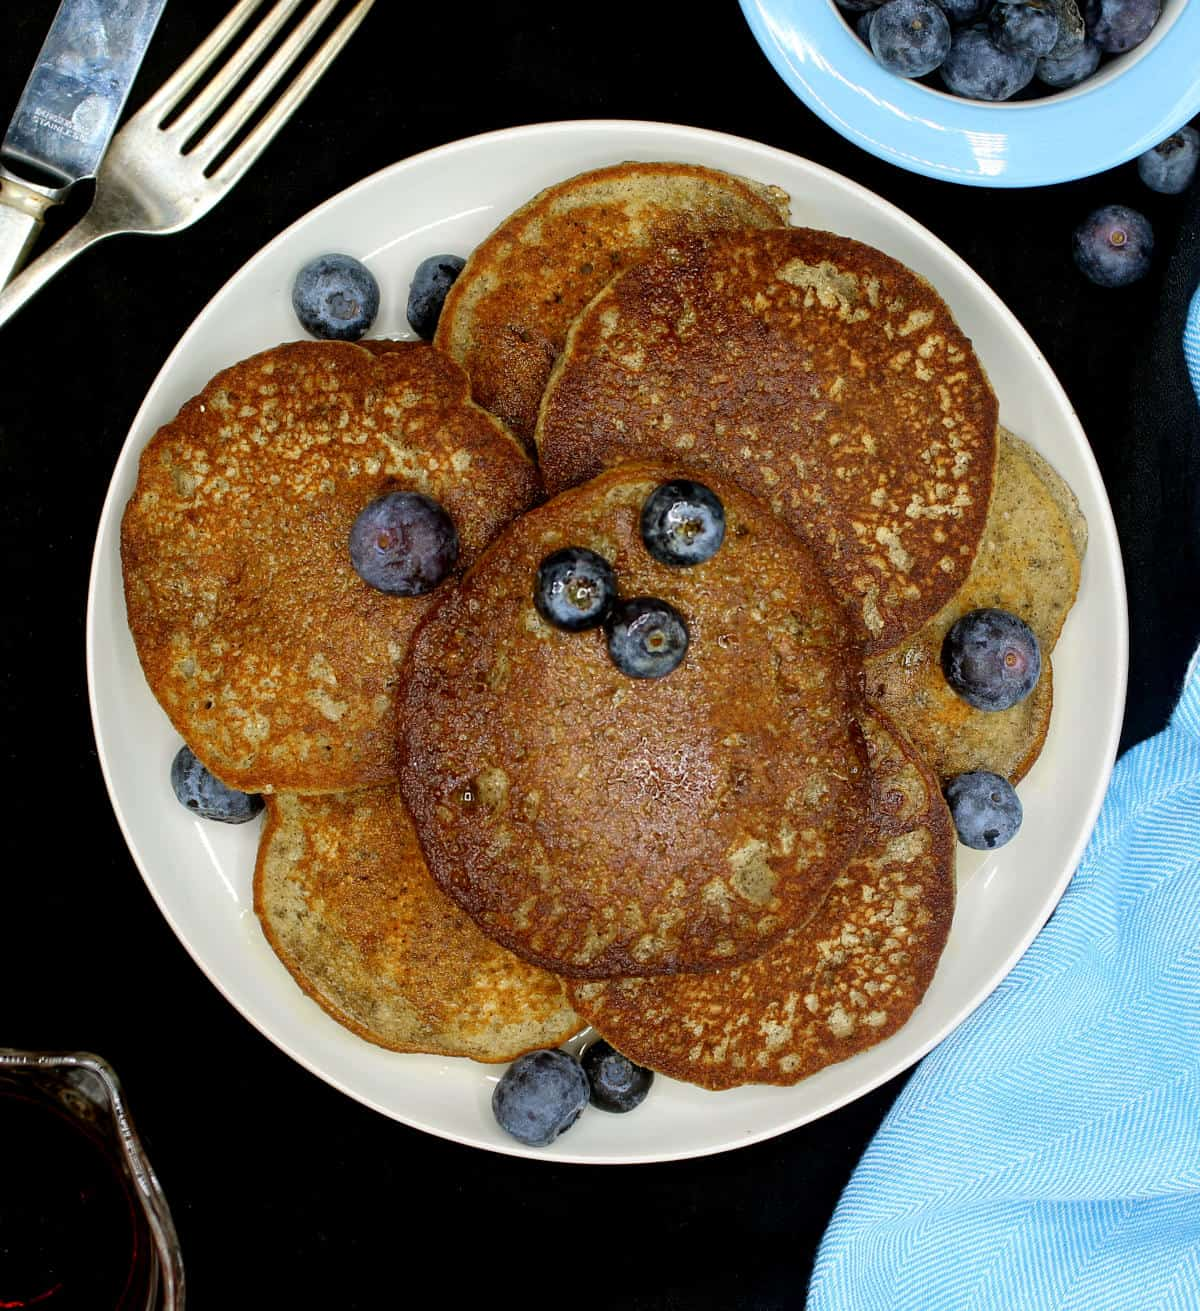 An overhead shot of gf vegan coconut flour pancakes on a plate with blueberries, knife and fork, maple syrup and blue napkin.